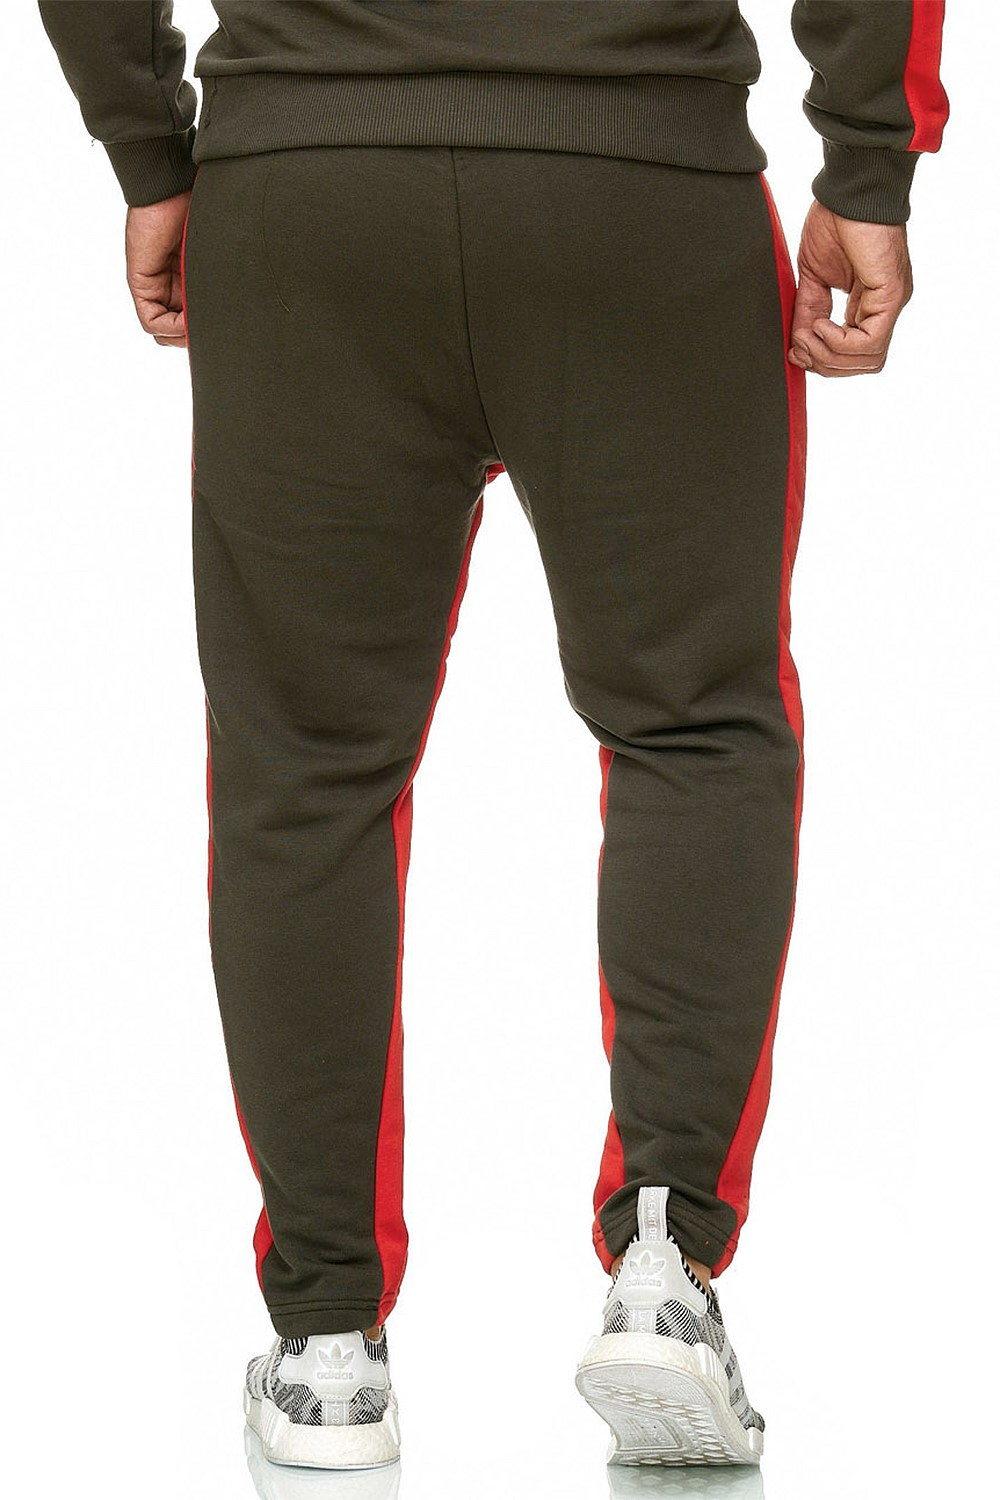 Redbridge-senores-regular-fit-chandal-fitness-sueter-aerobic-pantalones miniatura 8